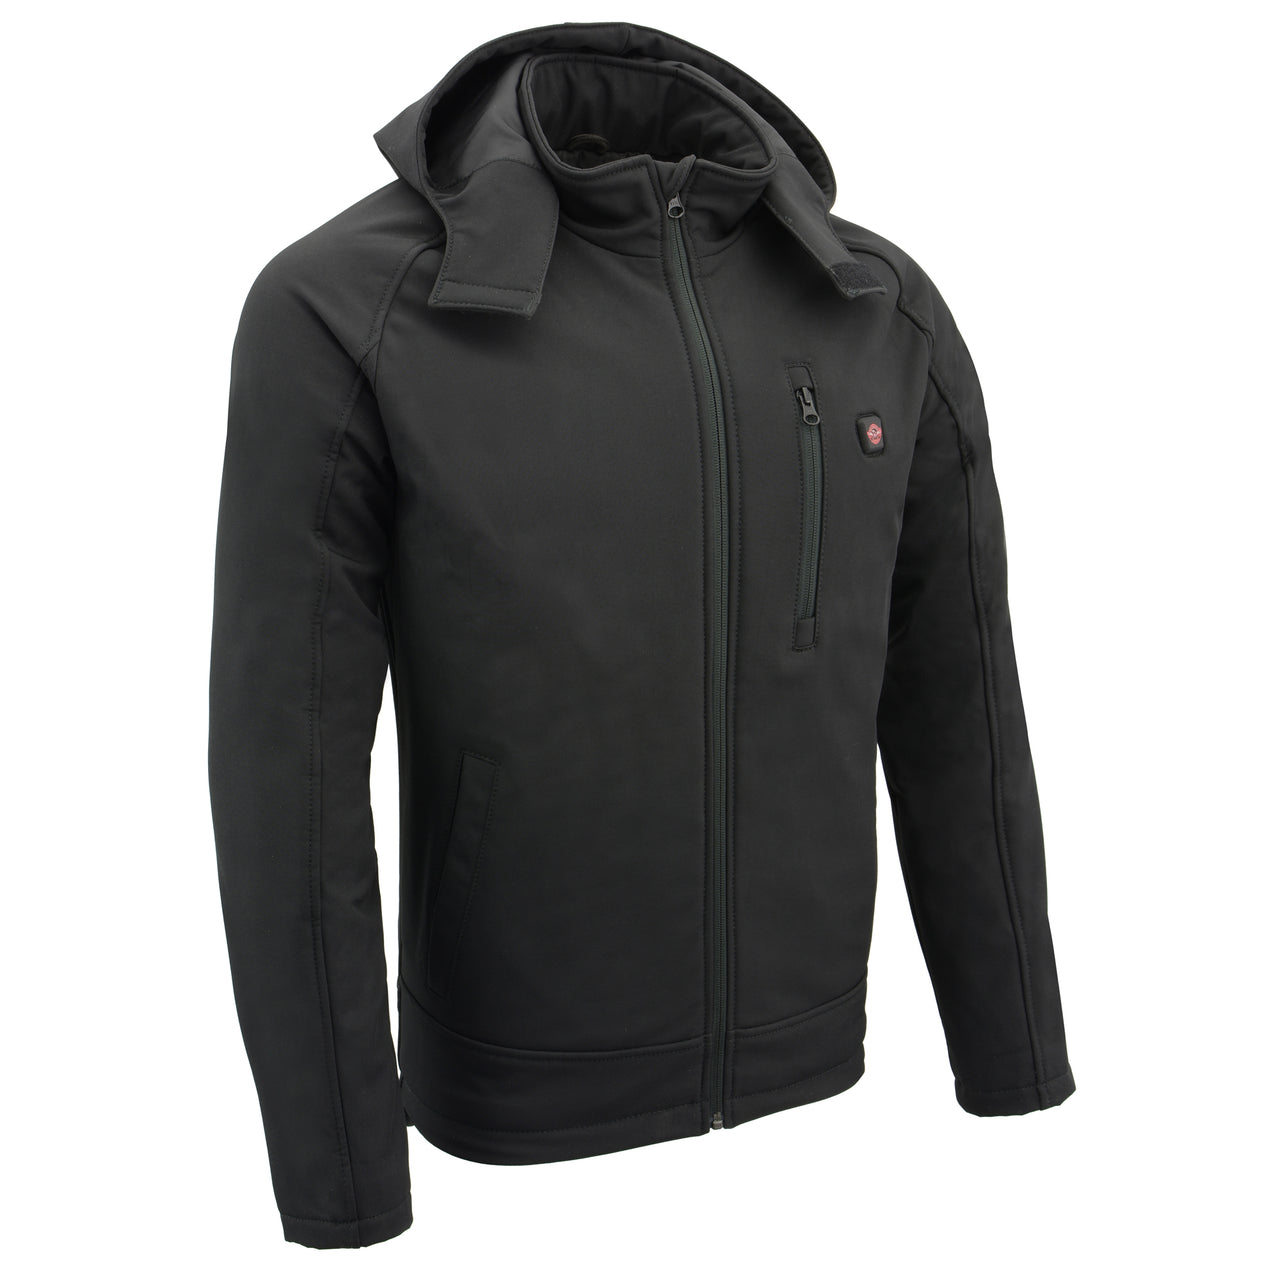 Mens Soft Shell Heated Zipper Front  Jacket w/ Detachable Hood - HighwayLeather